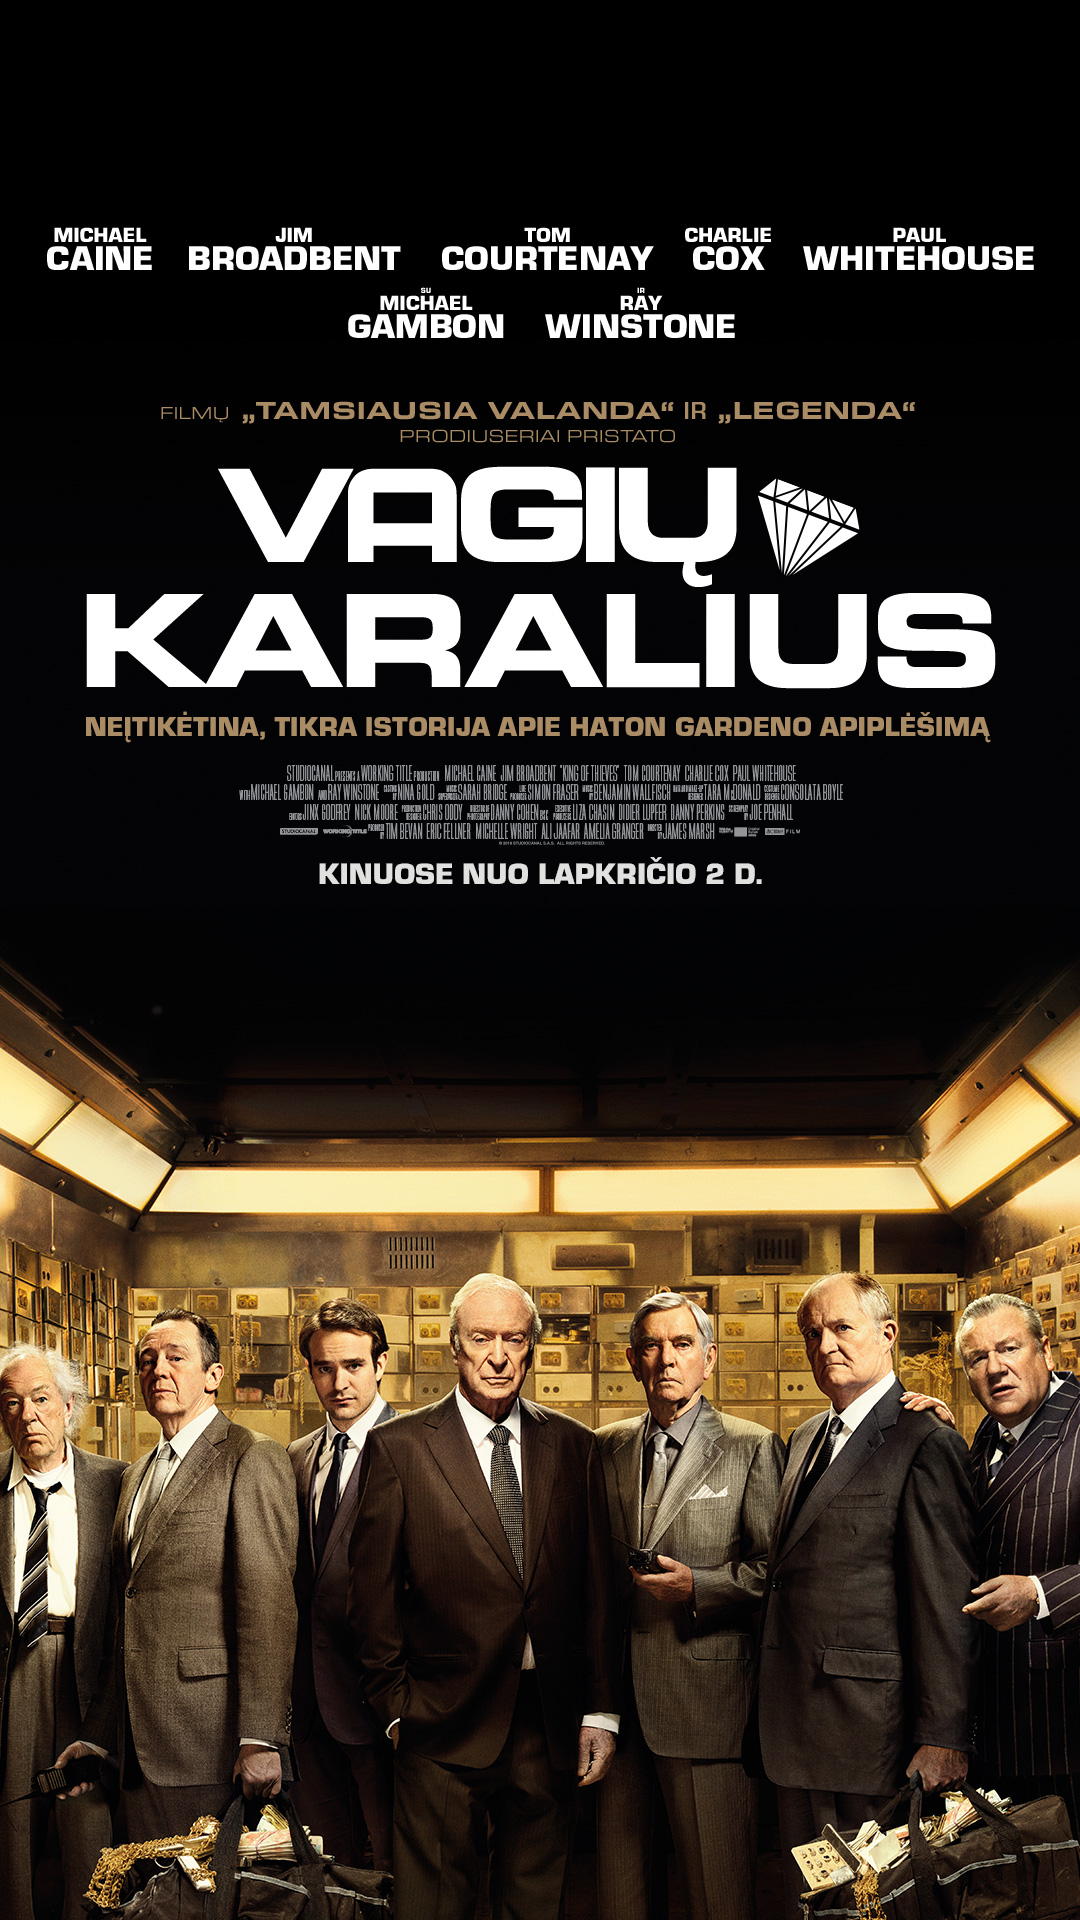 VAGIŲ KARALIUS (King of Thieves)